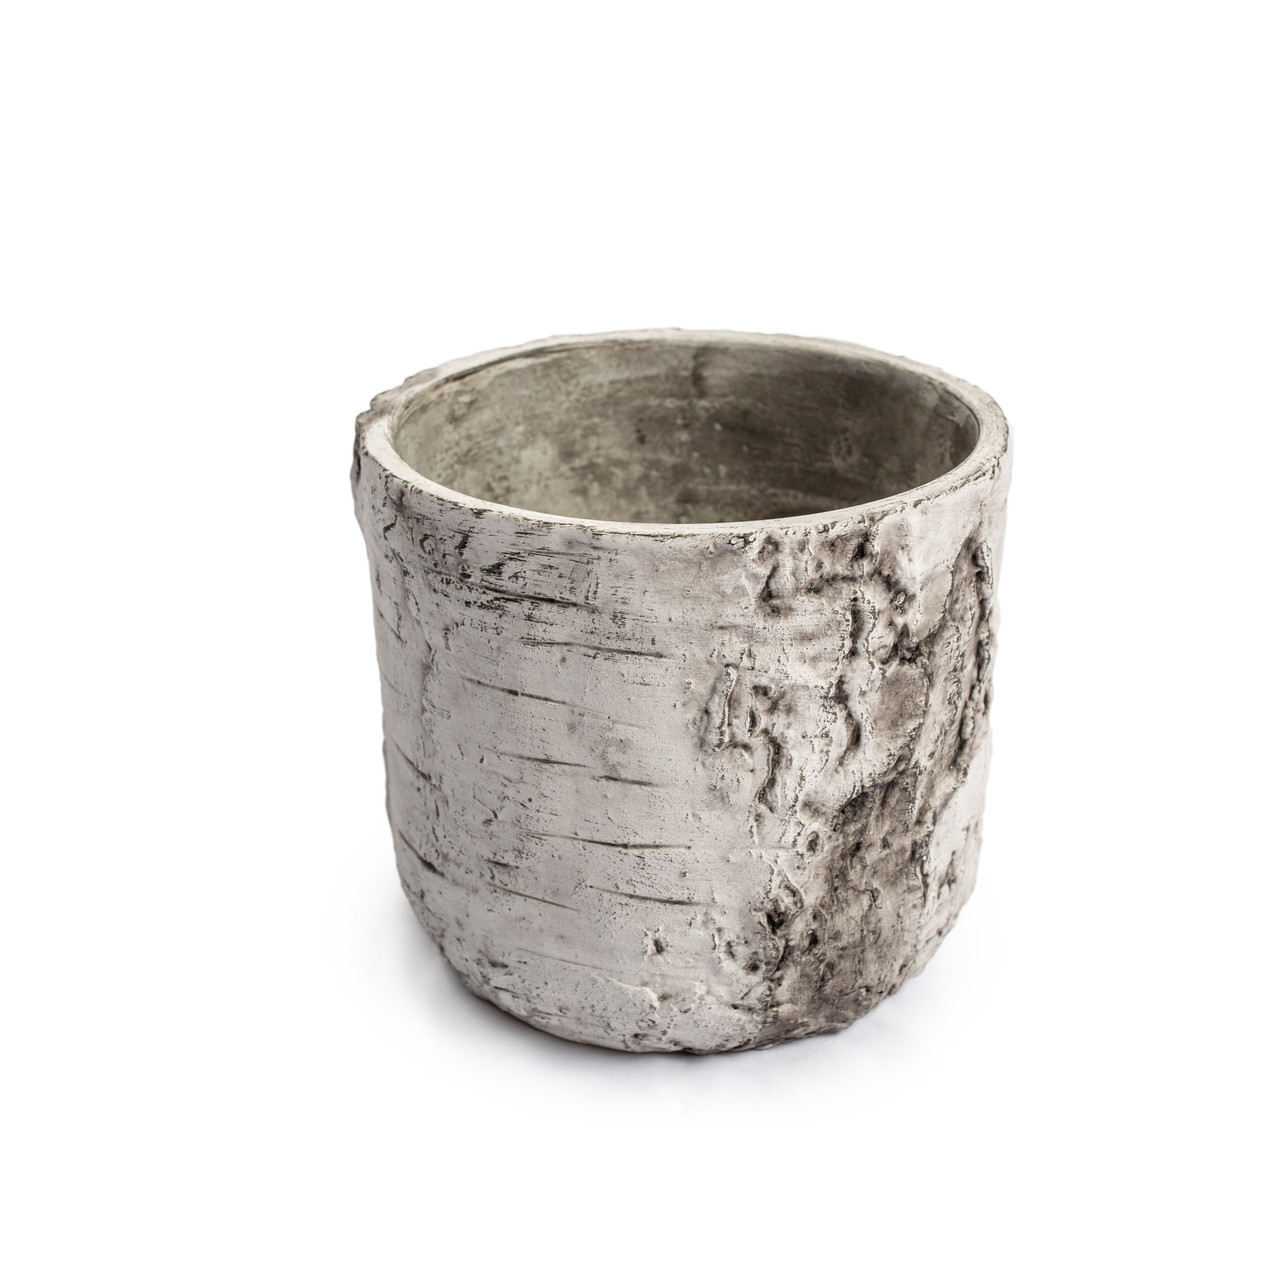 Medium Cement Pot with Rounded Bottom